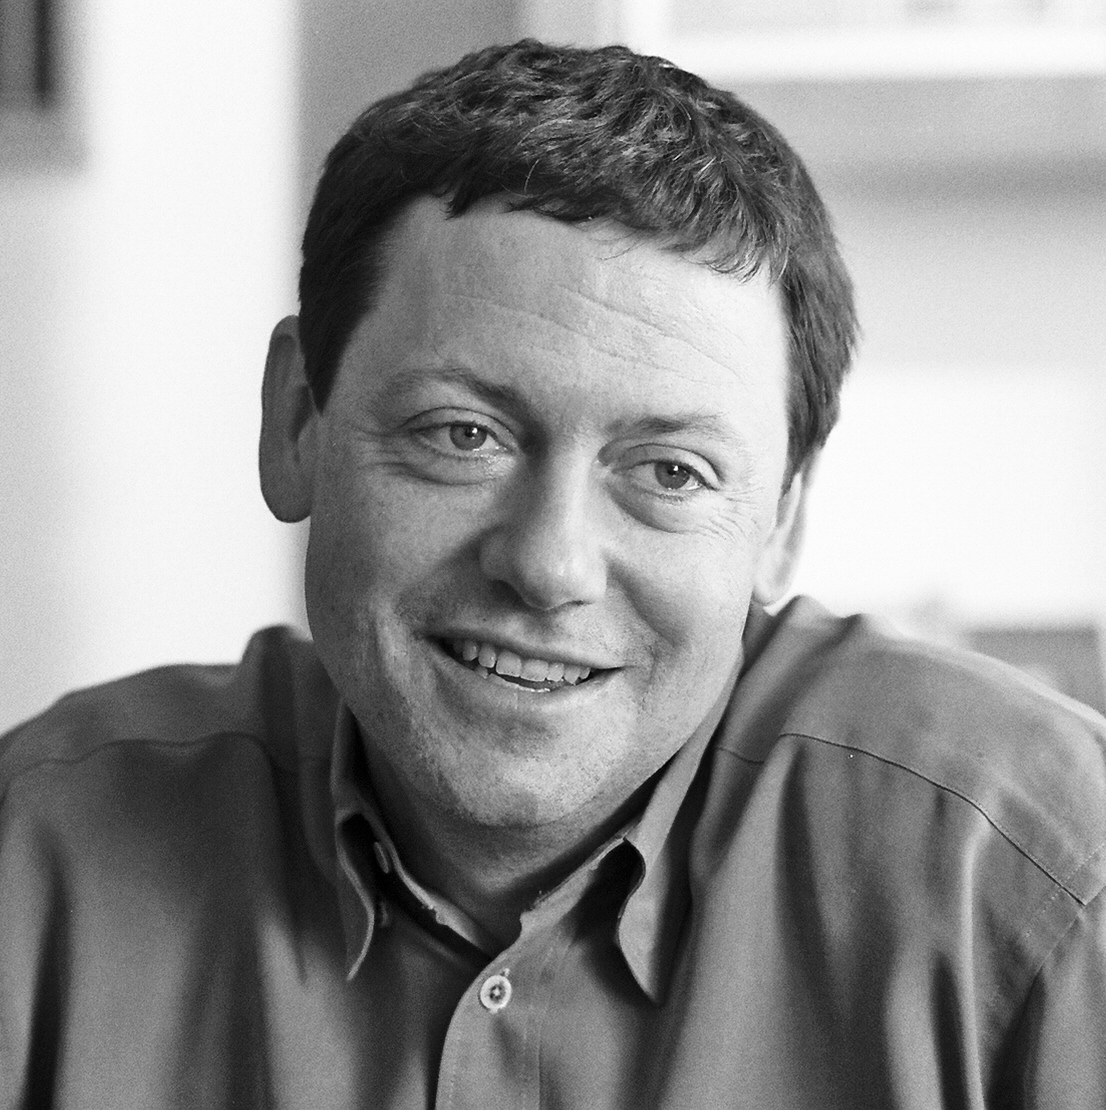 fred wilson headshot